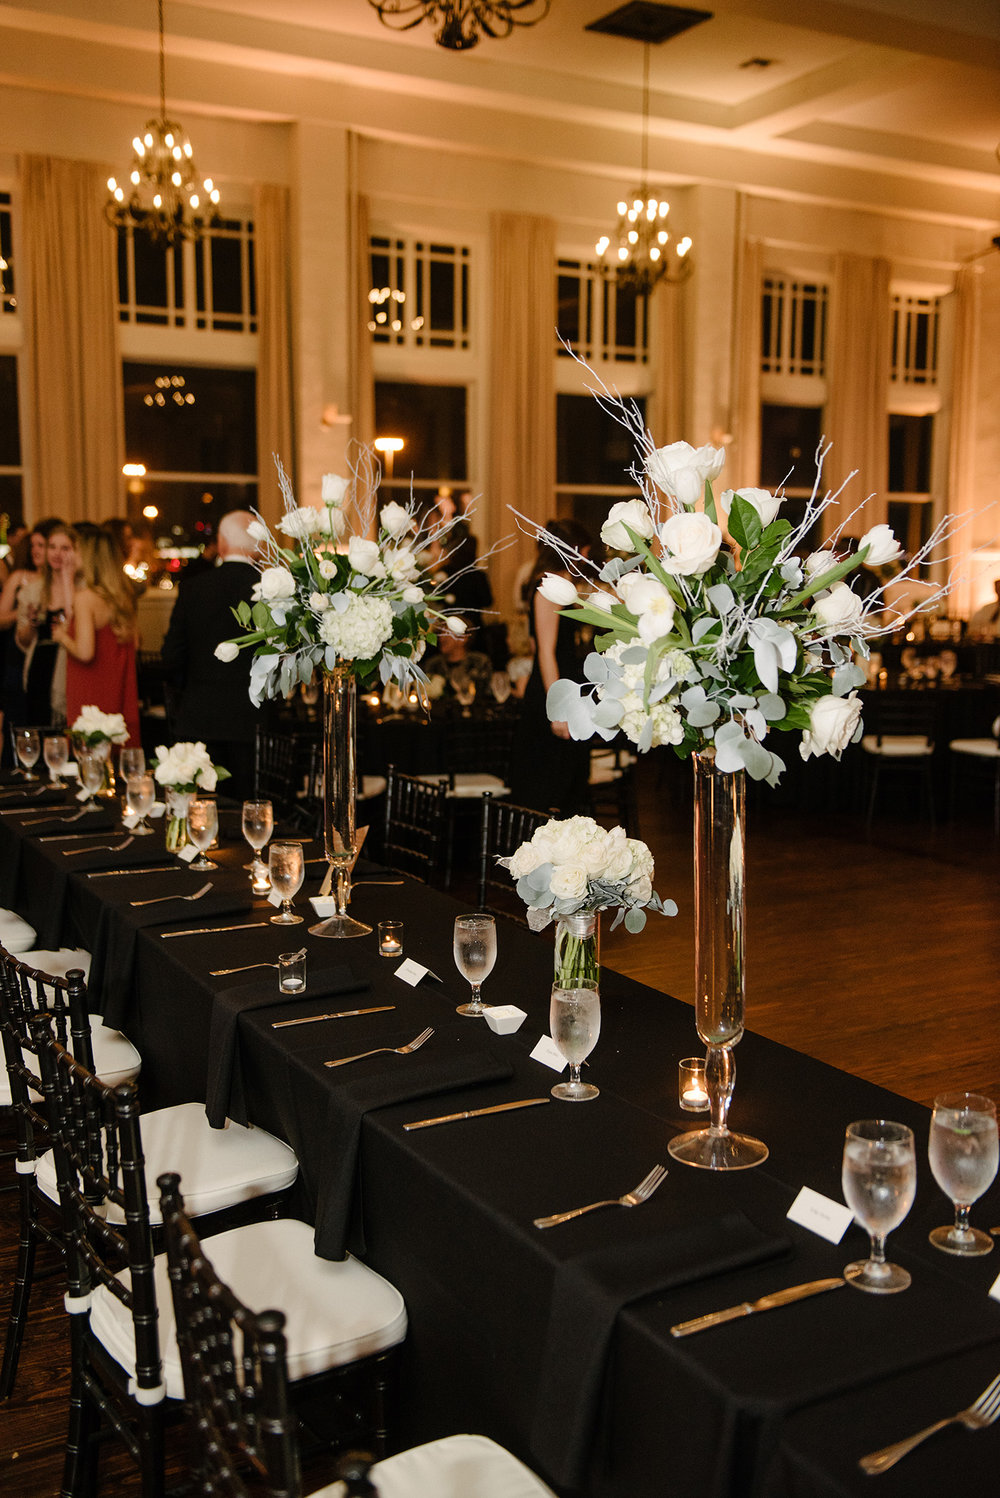 Dallas Wedding Planner - Winter Wedding at The Room on Main - Allday Events - 33.jpg